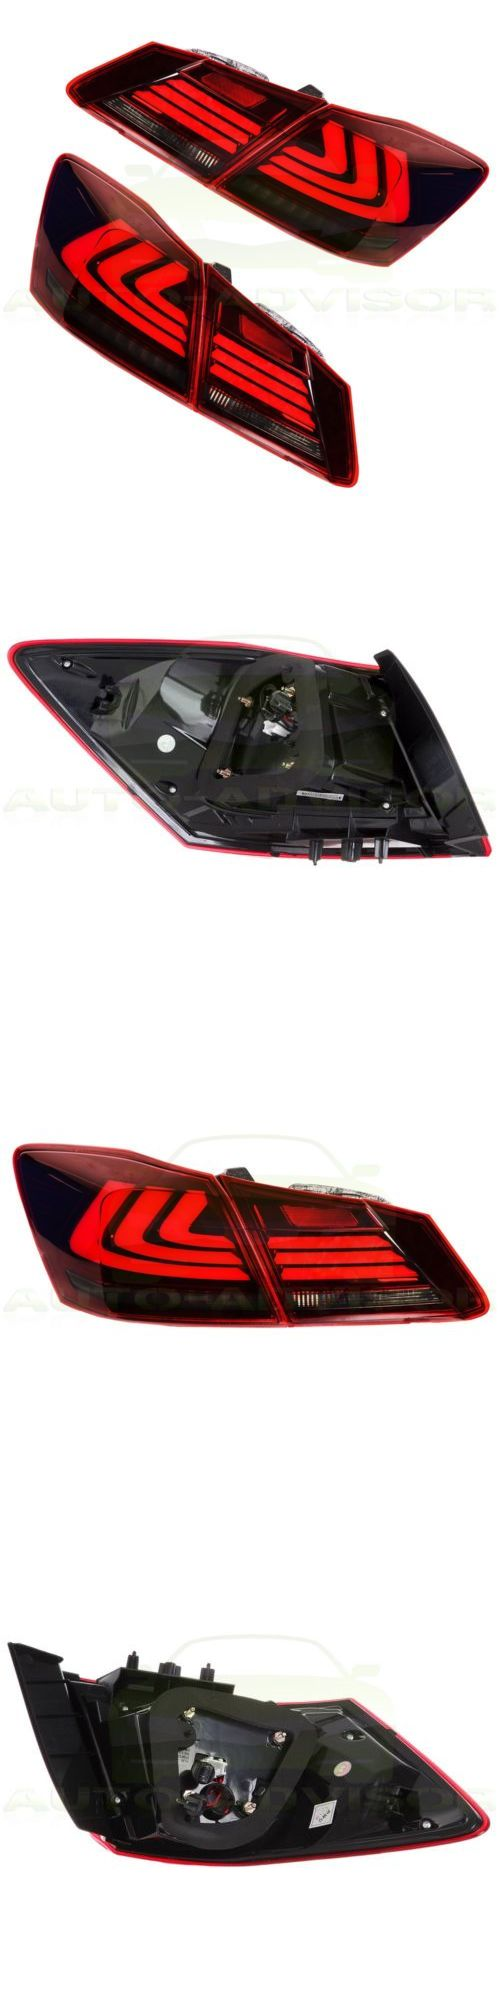 Motors Parts And Accessories: 2X Tail Lights Led Brake Rear Lamp For 2013 2014 2015 Honda Accord 4 Door Sedan -> BUY IT NOW ONLY: $318 on eBay!